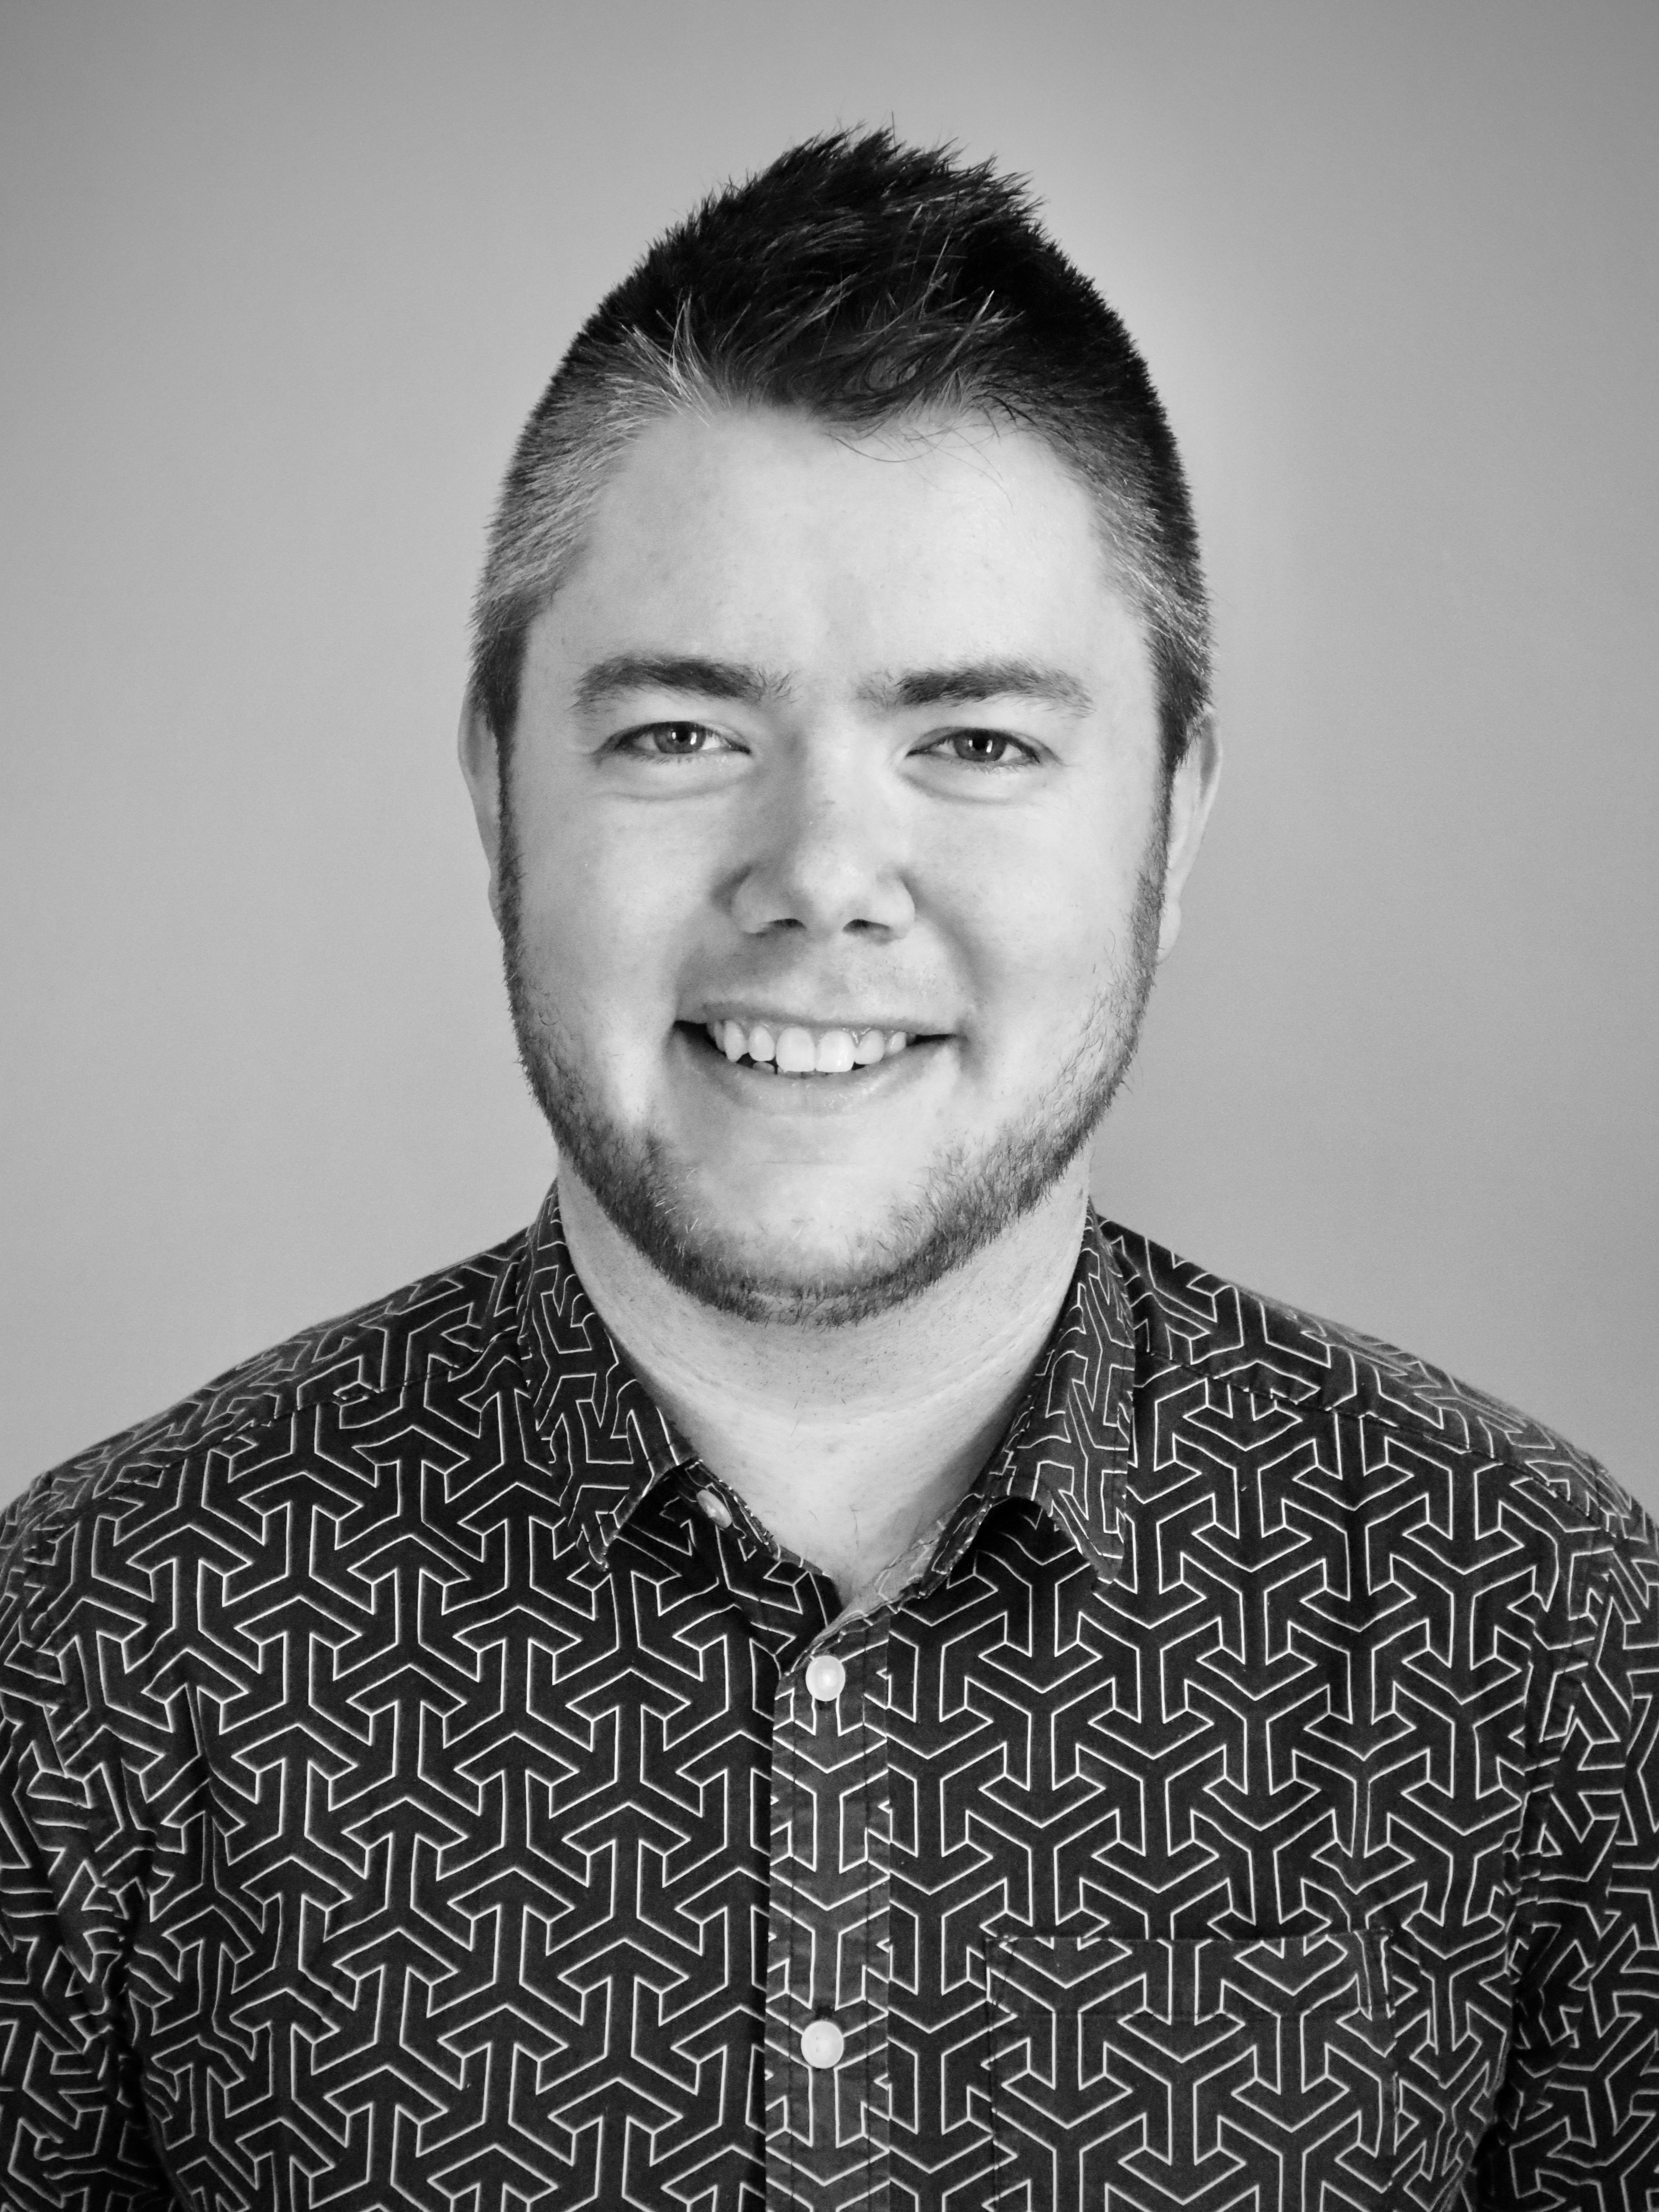 Garrett Winther is an early stage investor and venture builder, focused on combining physical and digital technologies to shake up industries. He brings together his background in engineering and experience in design, strategy and venture to help a diverse range of companies as they go from 0 to 1.